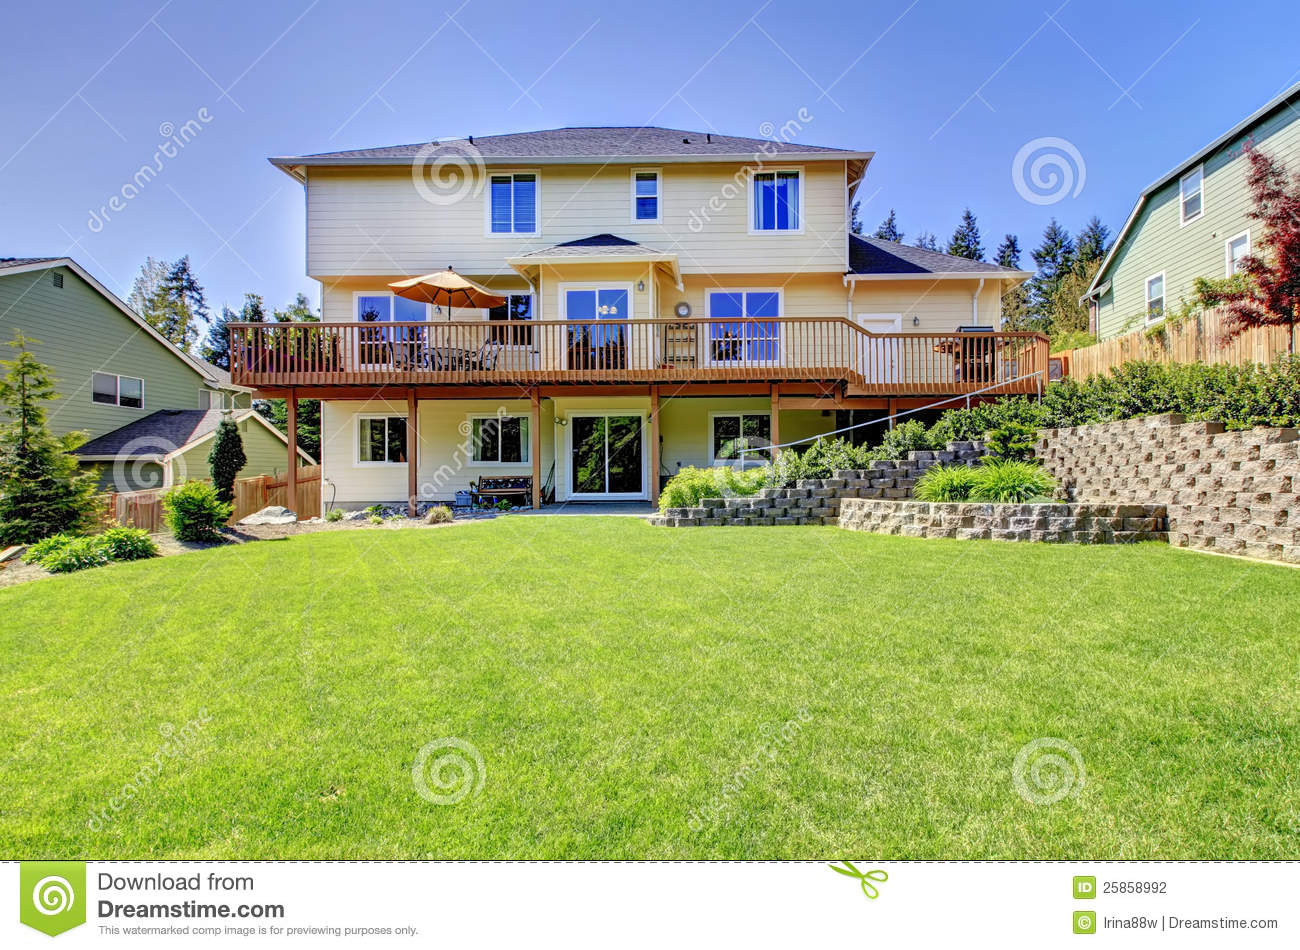 Backyard Of Three Story House With Fenced Yard Stock